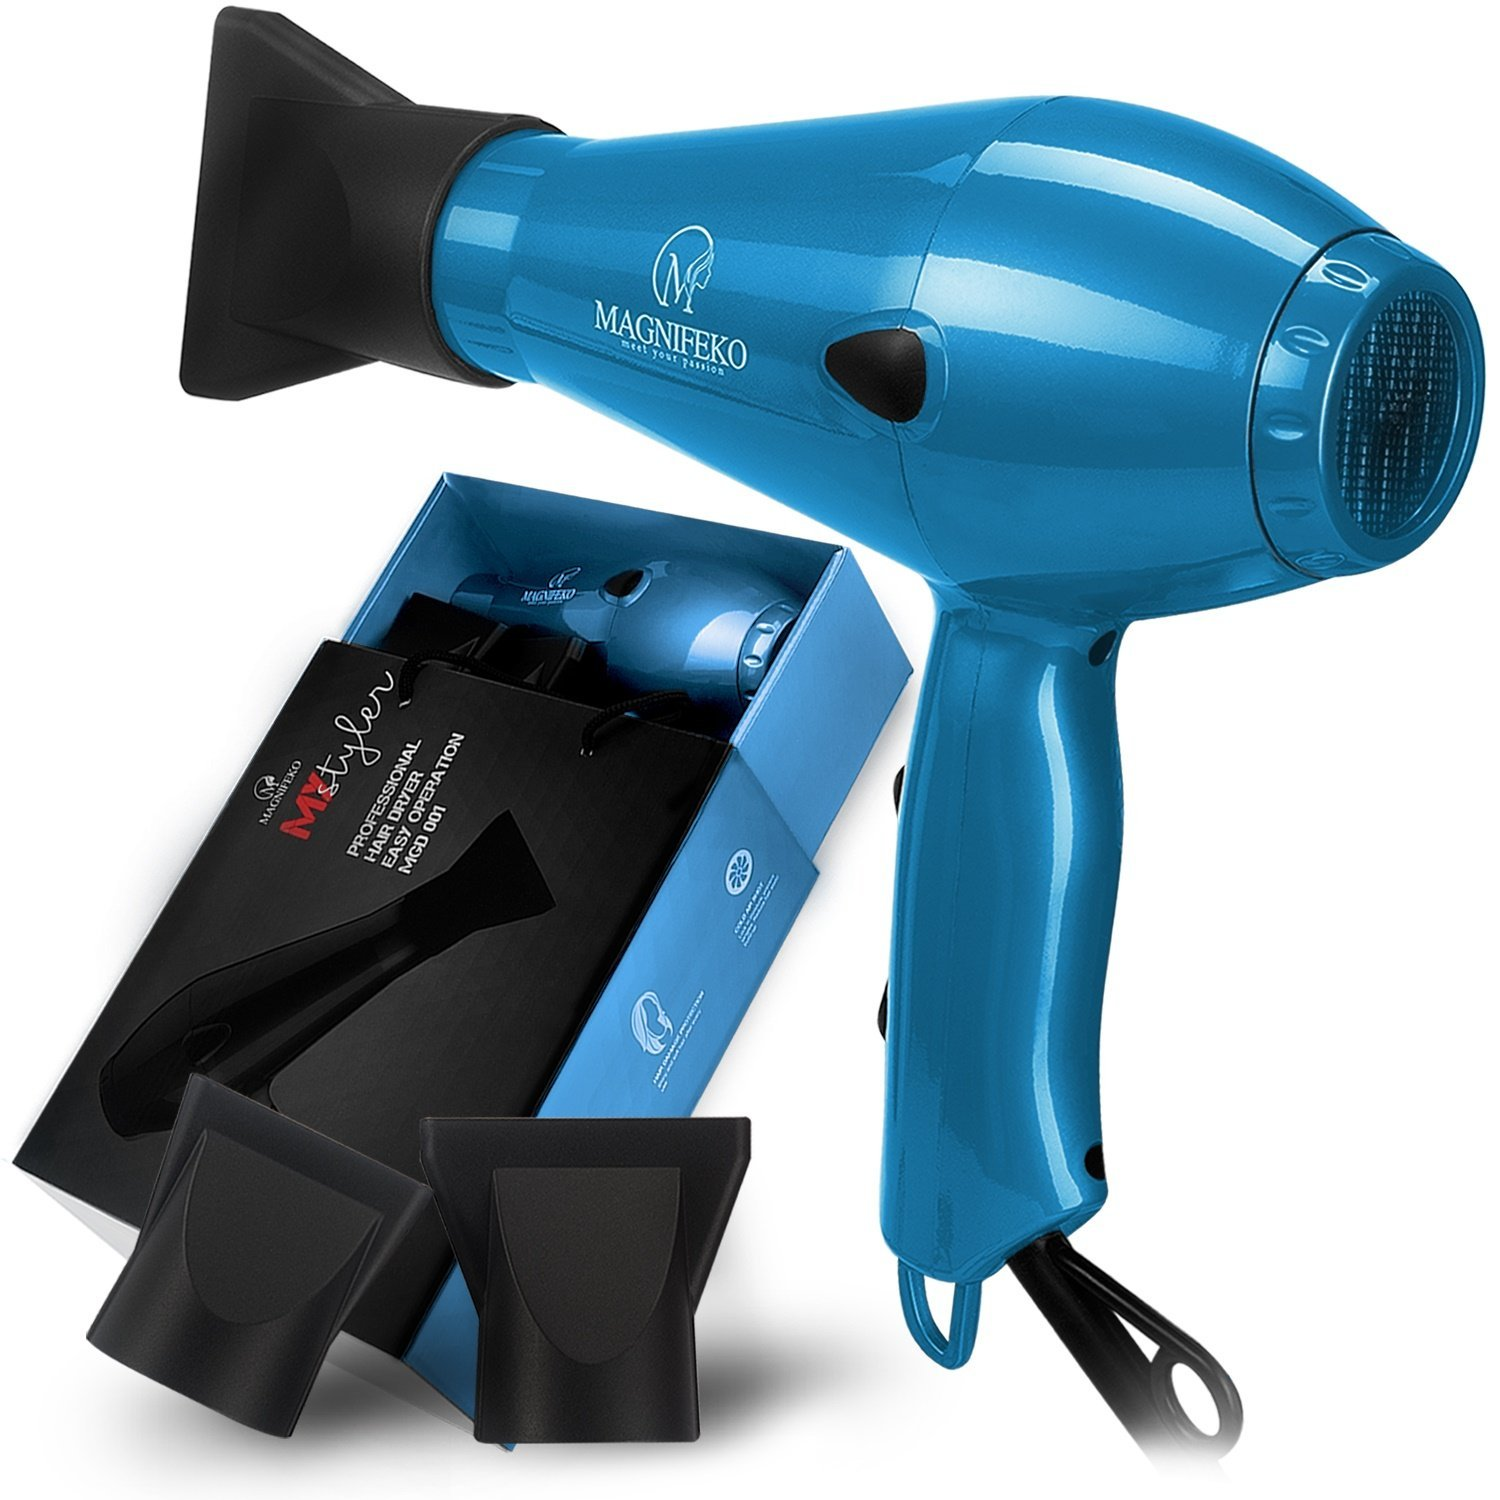 1875W Professional Hair Dryer with Ionic Conditioning - Powerful, Fast Dry Blow Dryer - 2 Speeds, 3 Heat Settings Blue